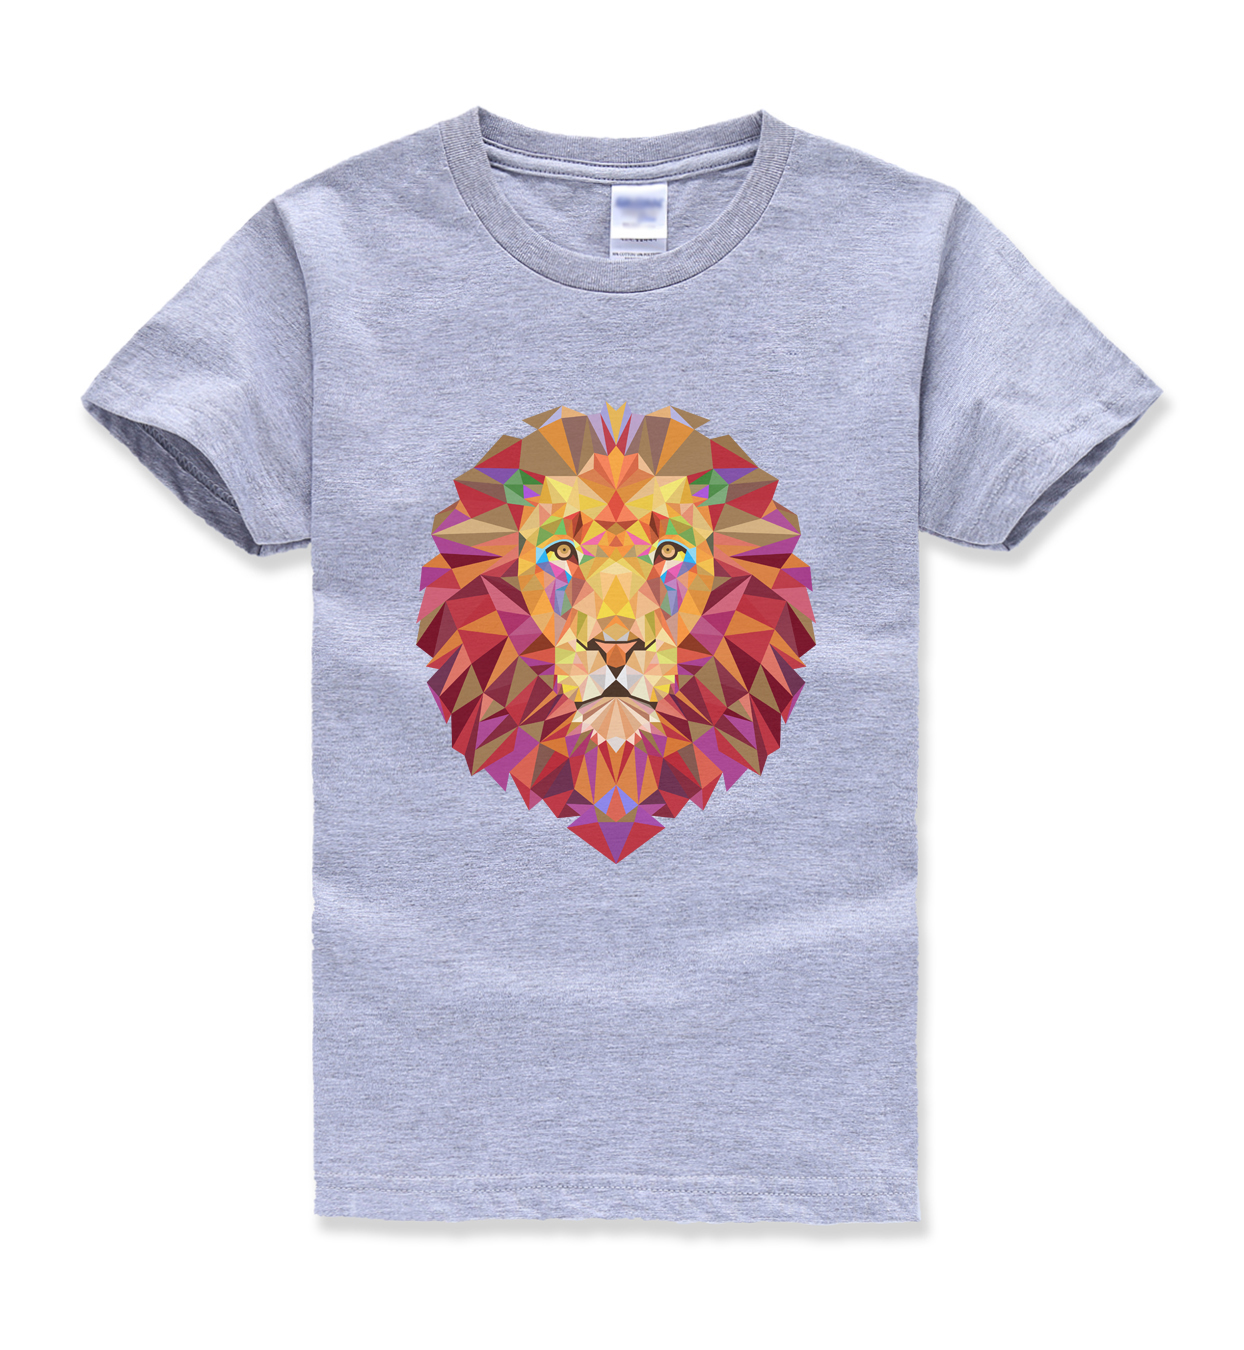 2018 summer new fashion brand hipster t shirt streetwear kids tops funny cute animal homme t-shirts children boys clothes mma 2018 new fashion summer brand clothing homme kids t shirts funny streetwear tops tee shirt children tshirts boys clothes